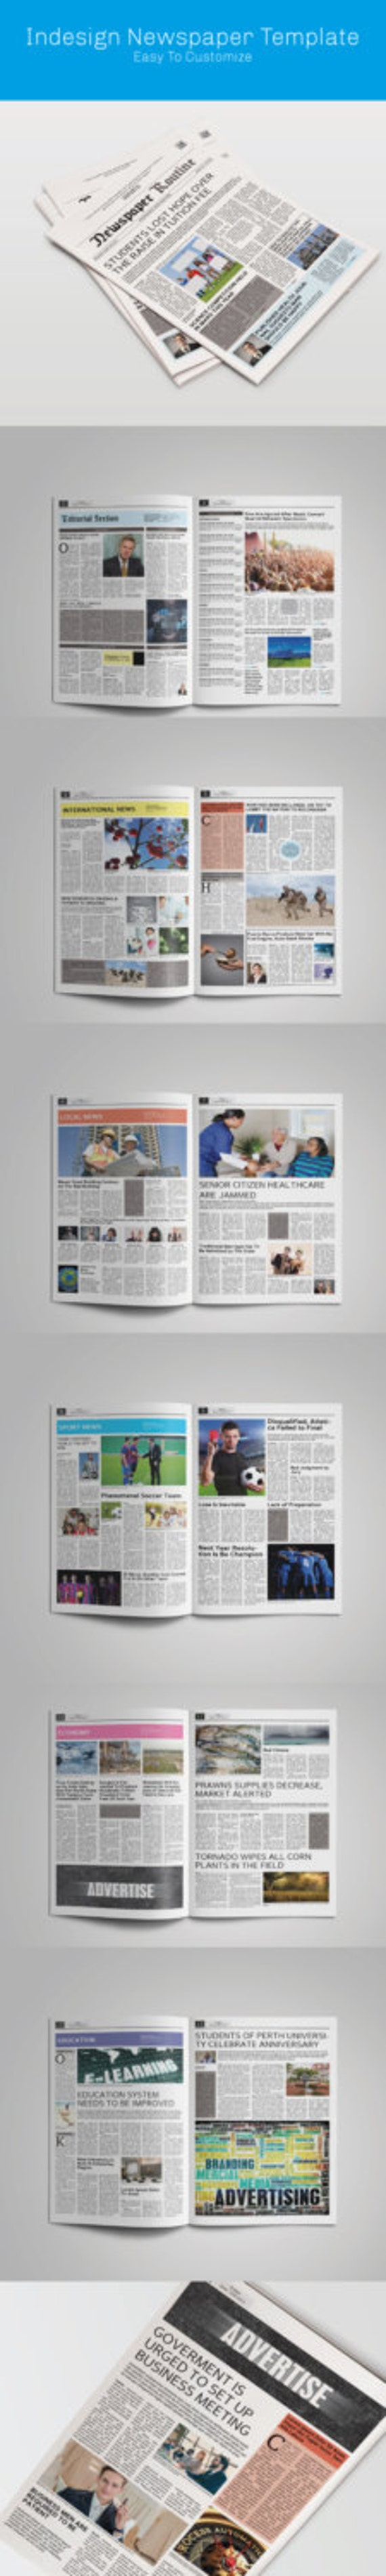 Newspaper Template Tabloid Size Etsy